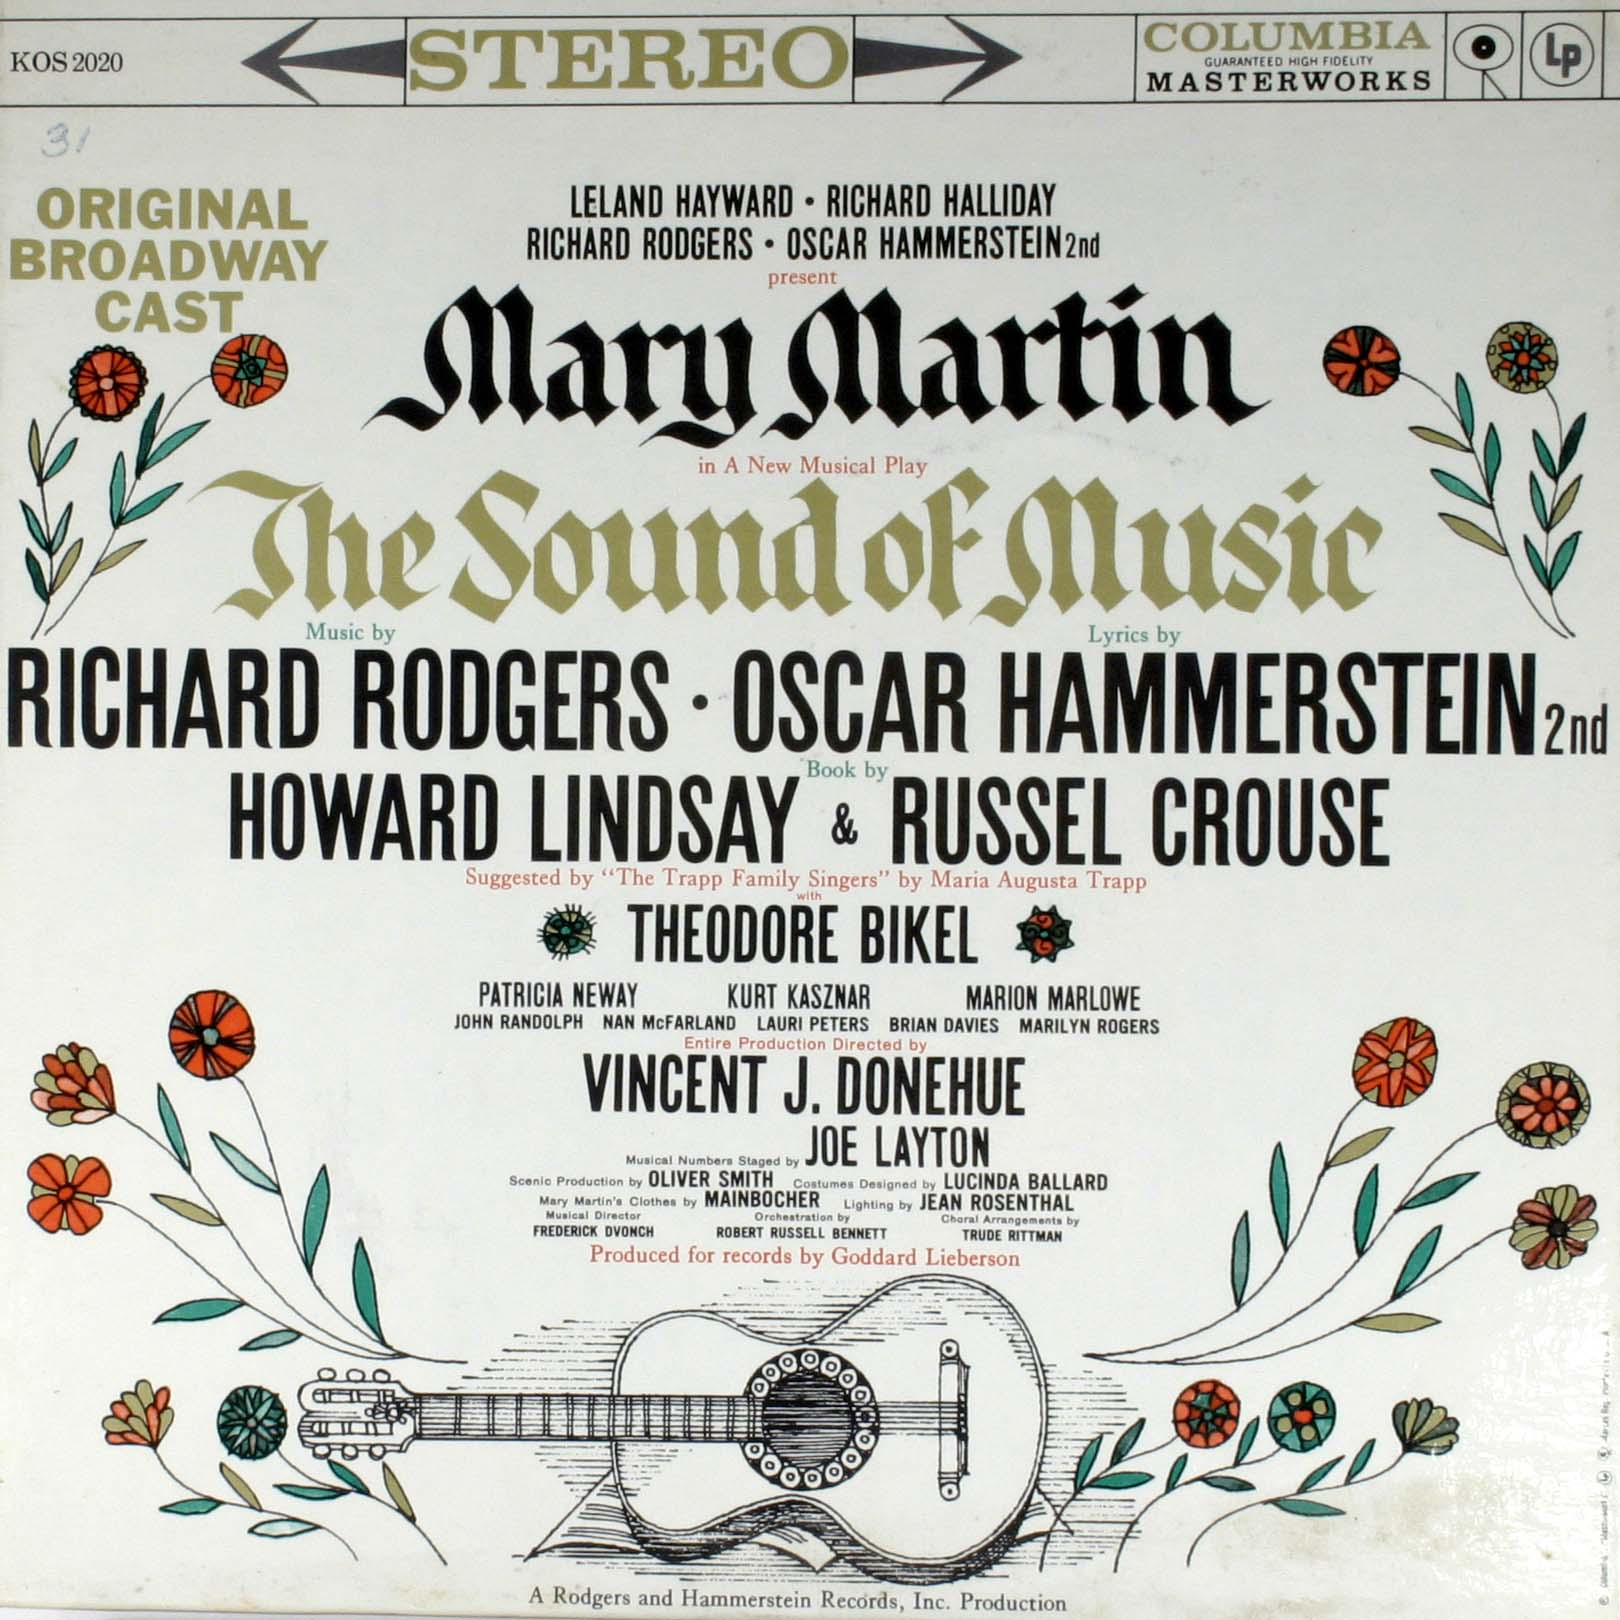 Original Broadway Cast - The Sound Of Music